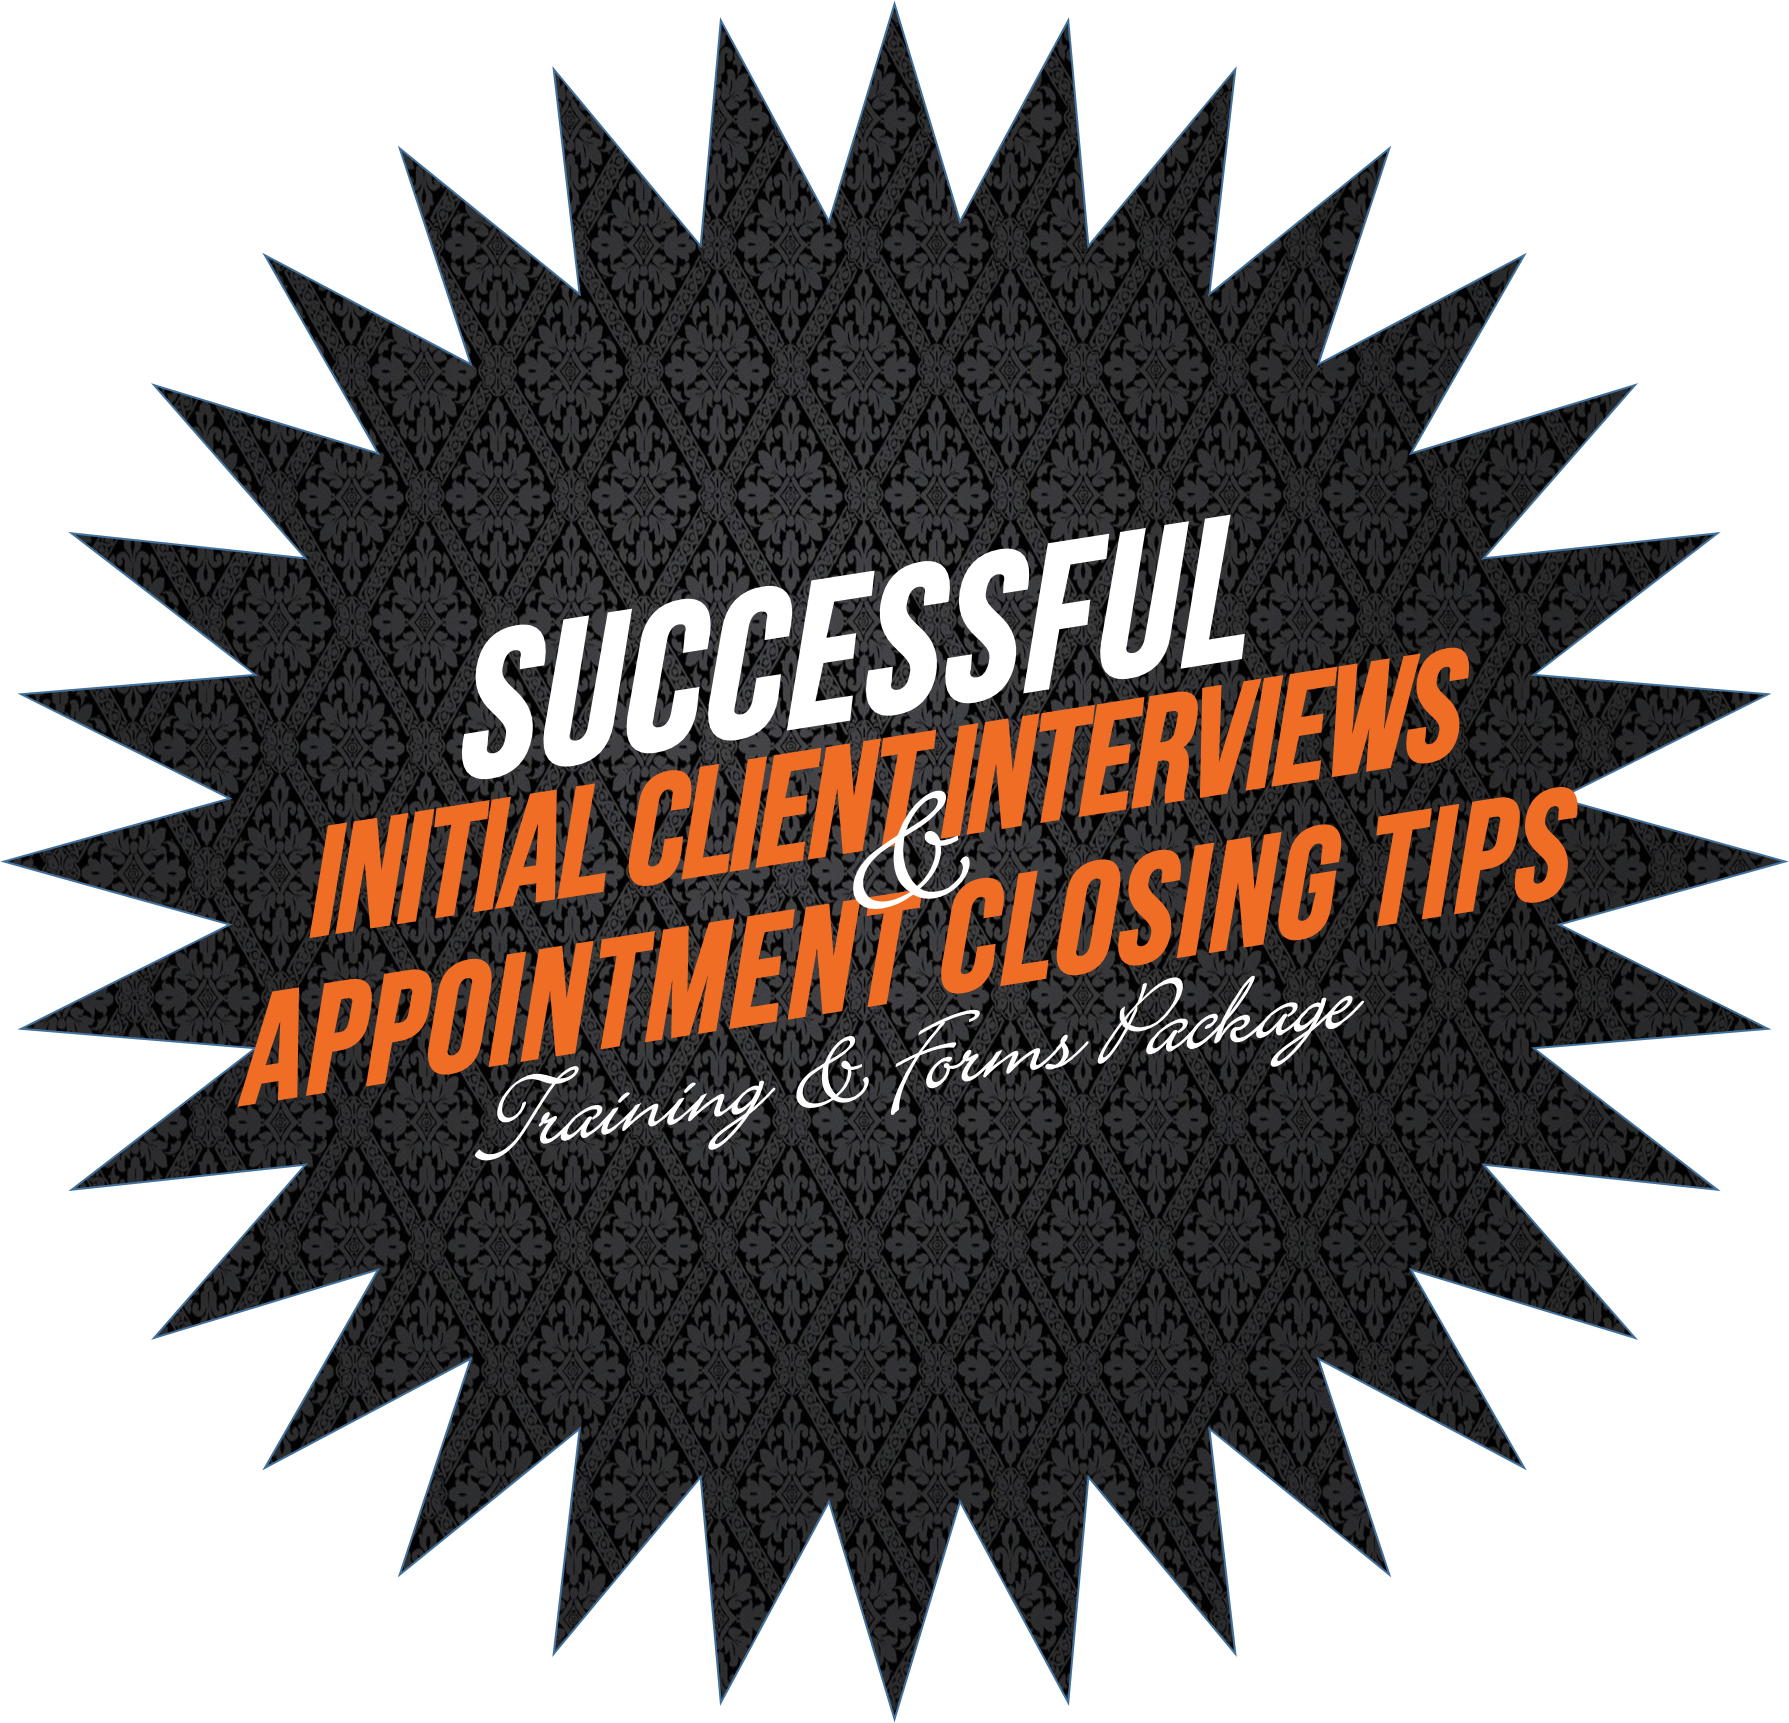 successful-client-meetings-closing-tips-forms-package